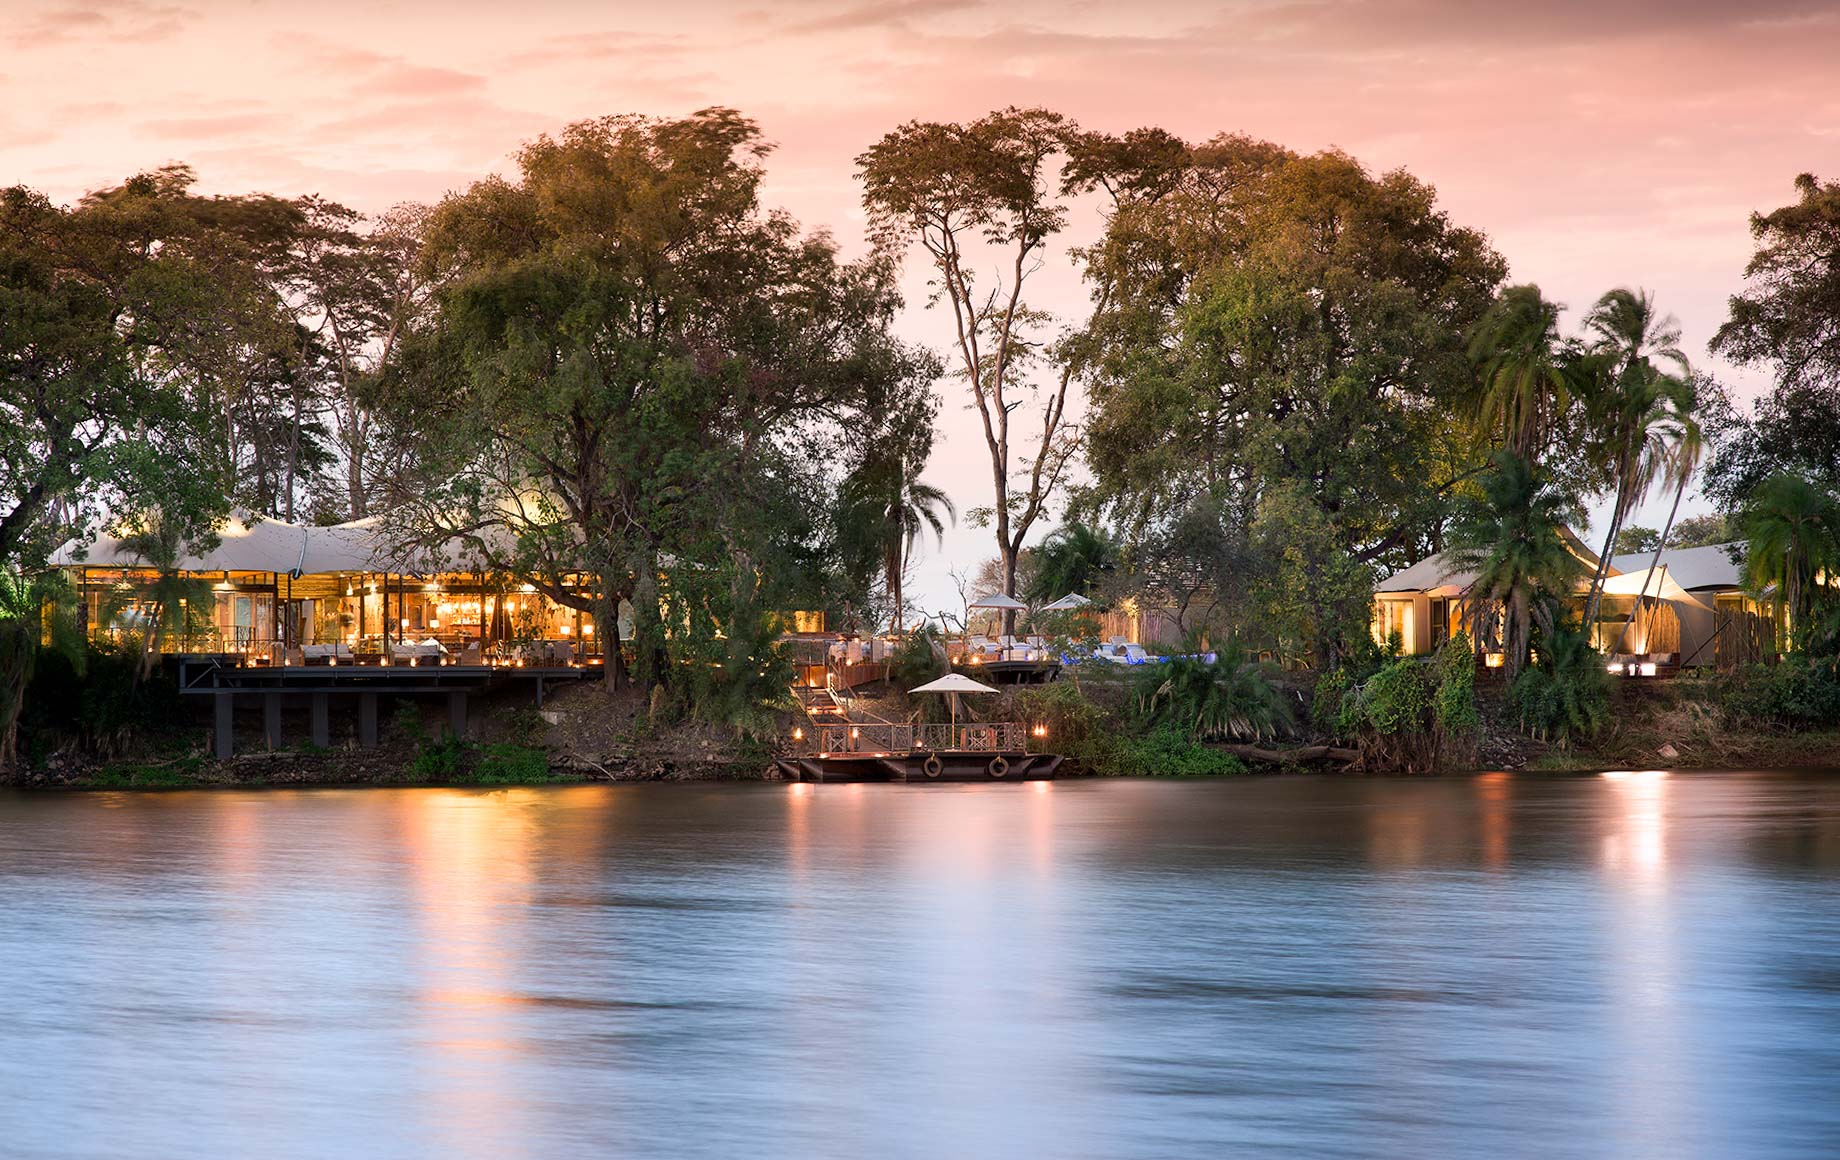 Exterior view of Thorntree River Lodge